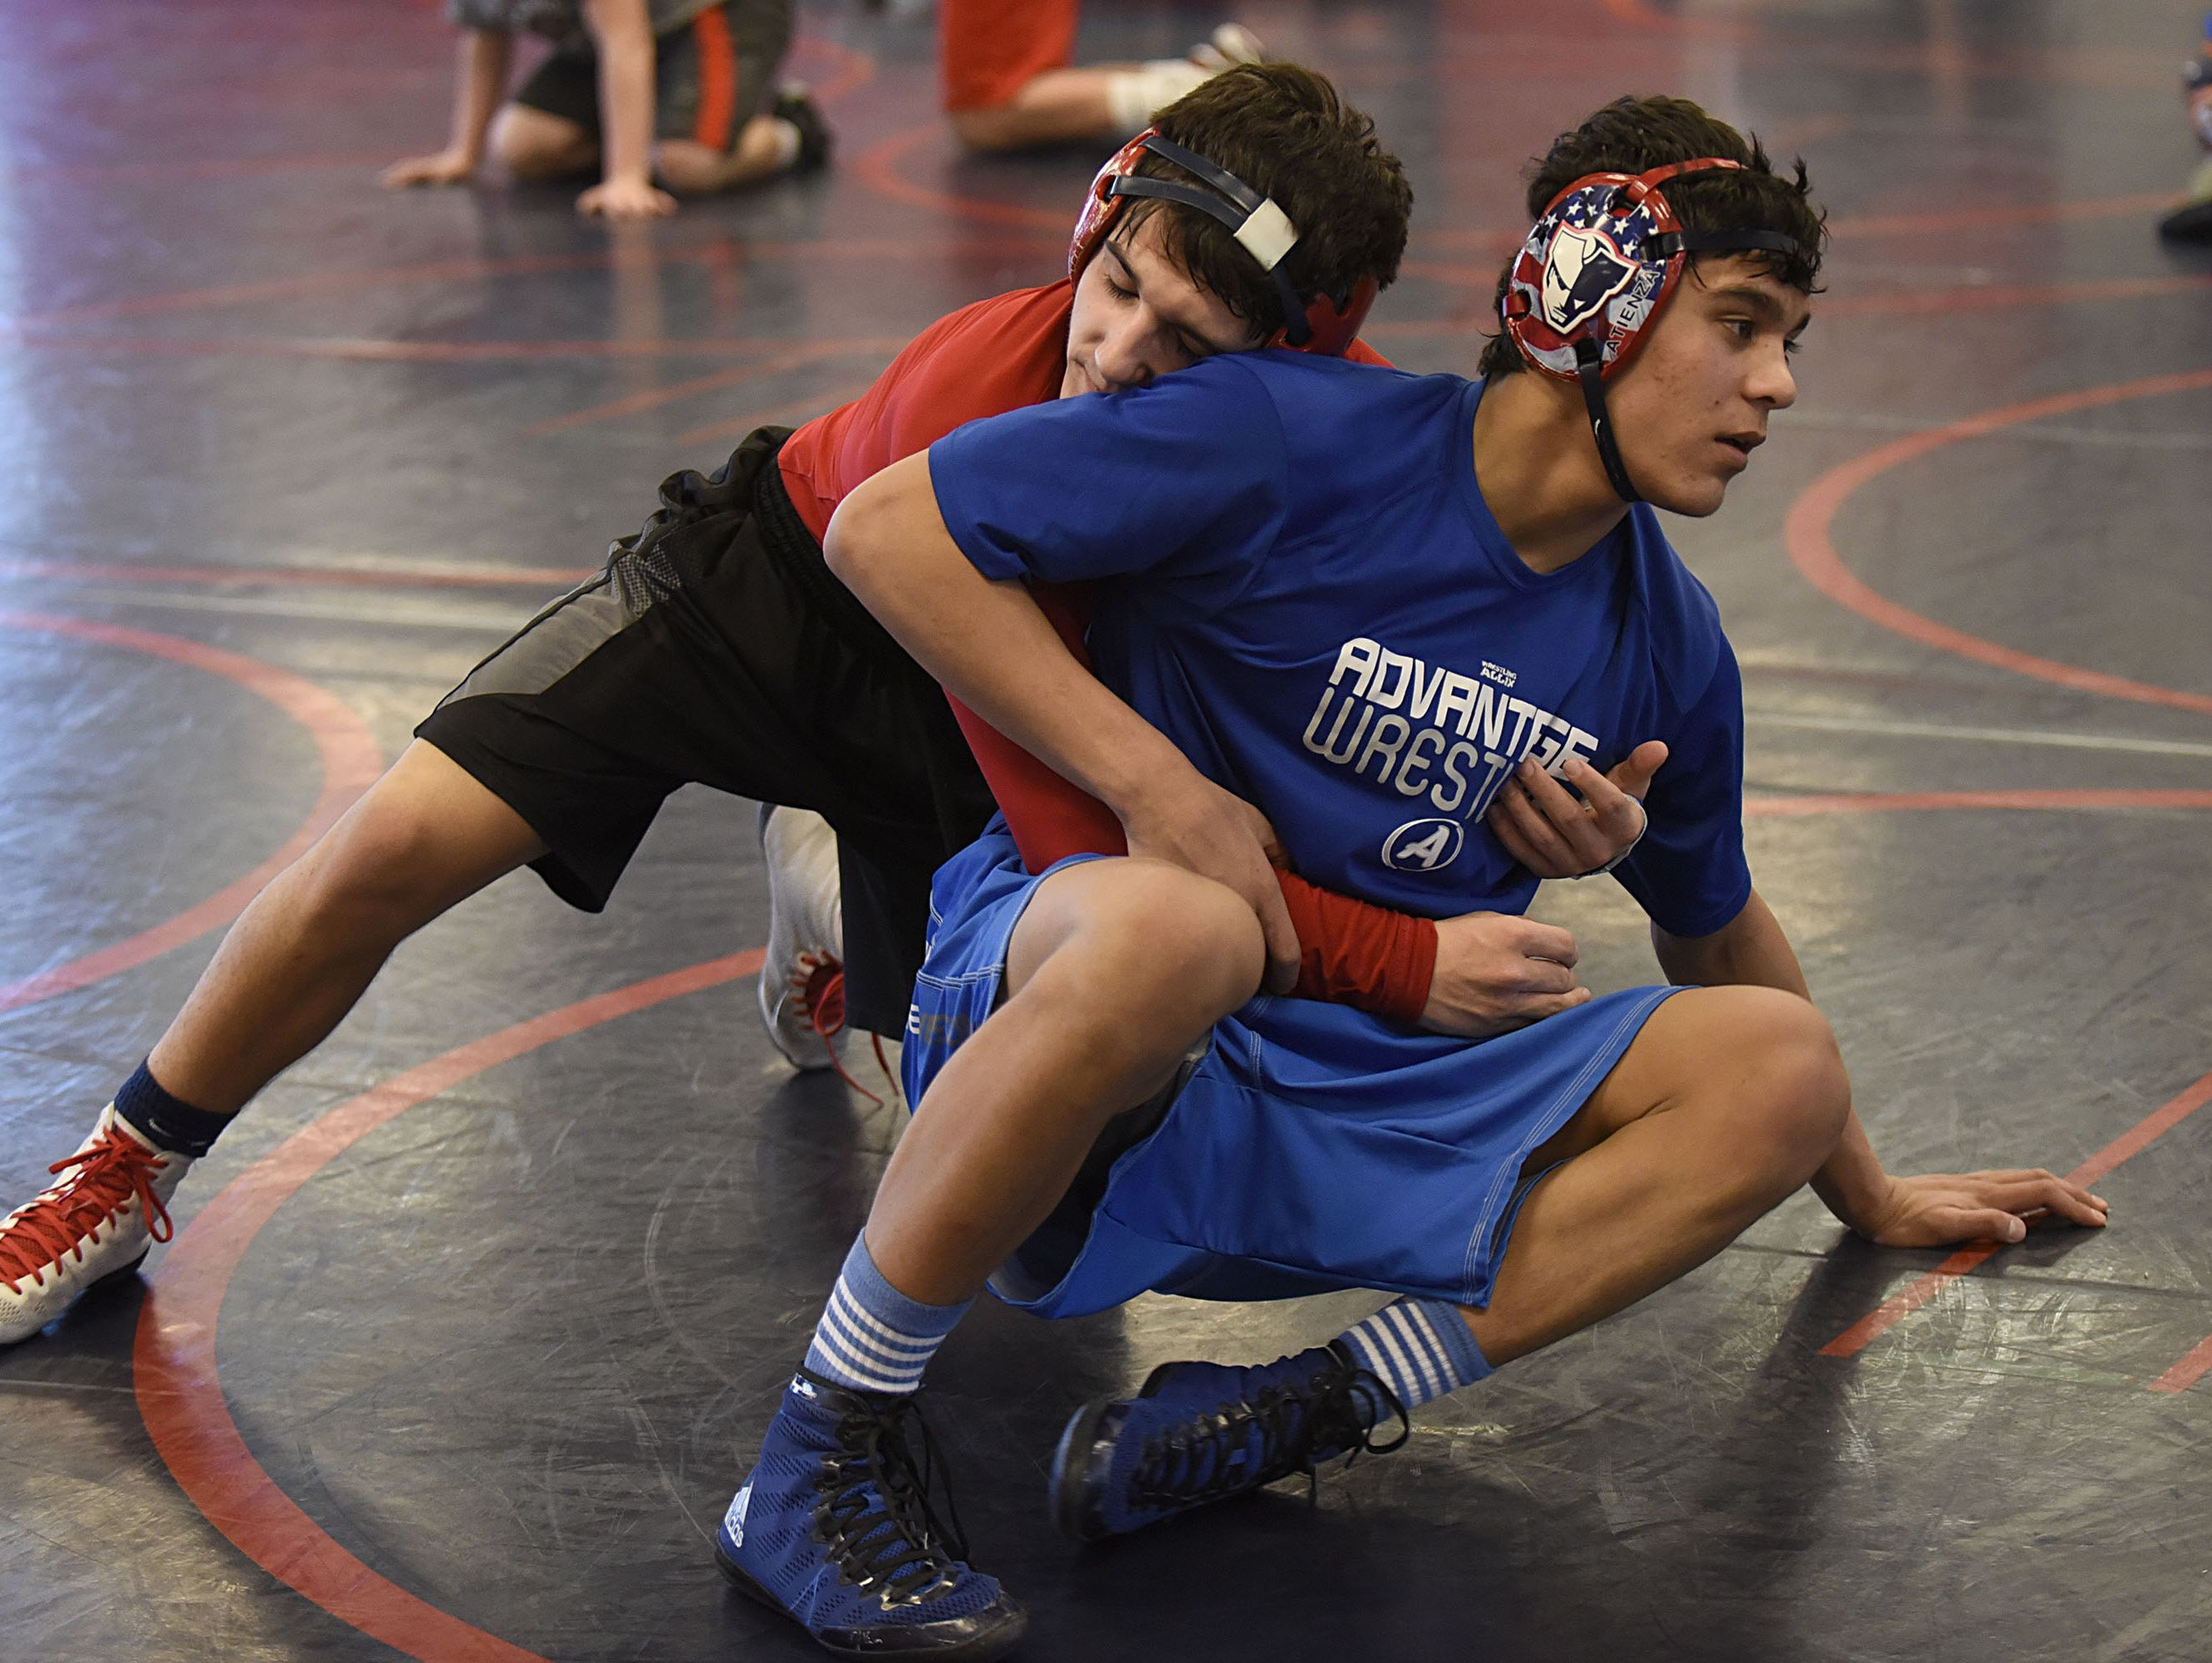 Practices give wrestlers such as Livonia Franklin's Nathan Atienza (right) and Marino DiPonio the chance to push each other beyond their physical limits.